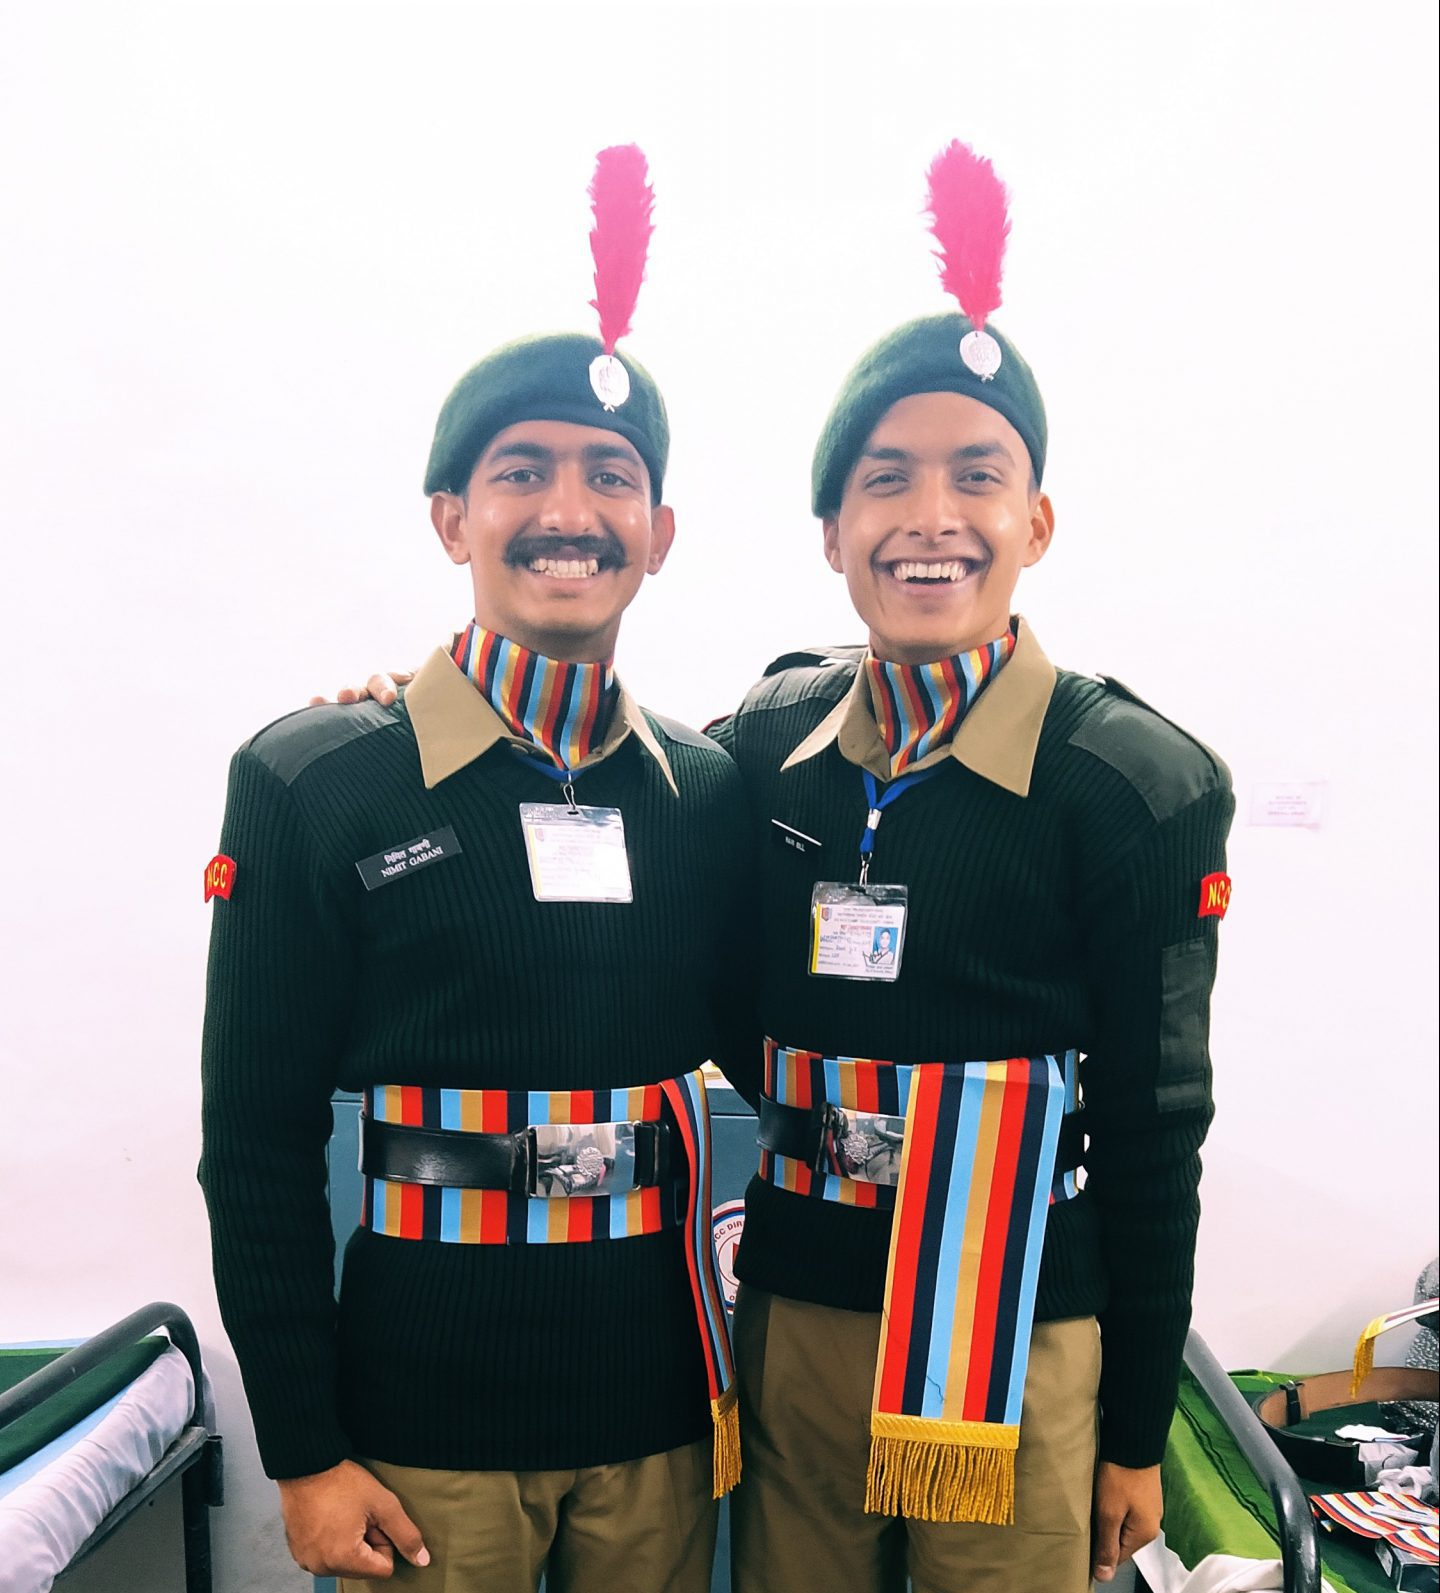 Two cadets from CHARUSAT University to perform in the Republic Day parade at New Delhi